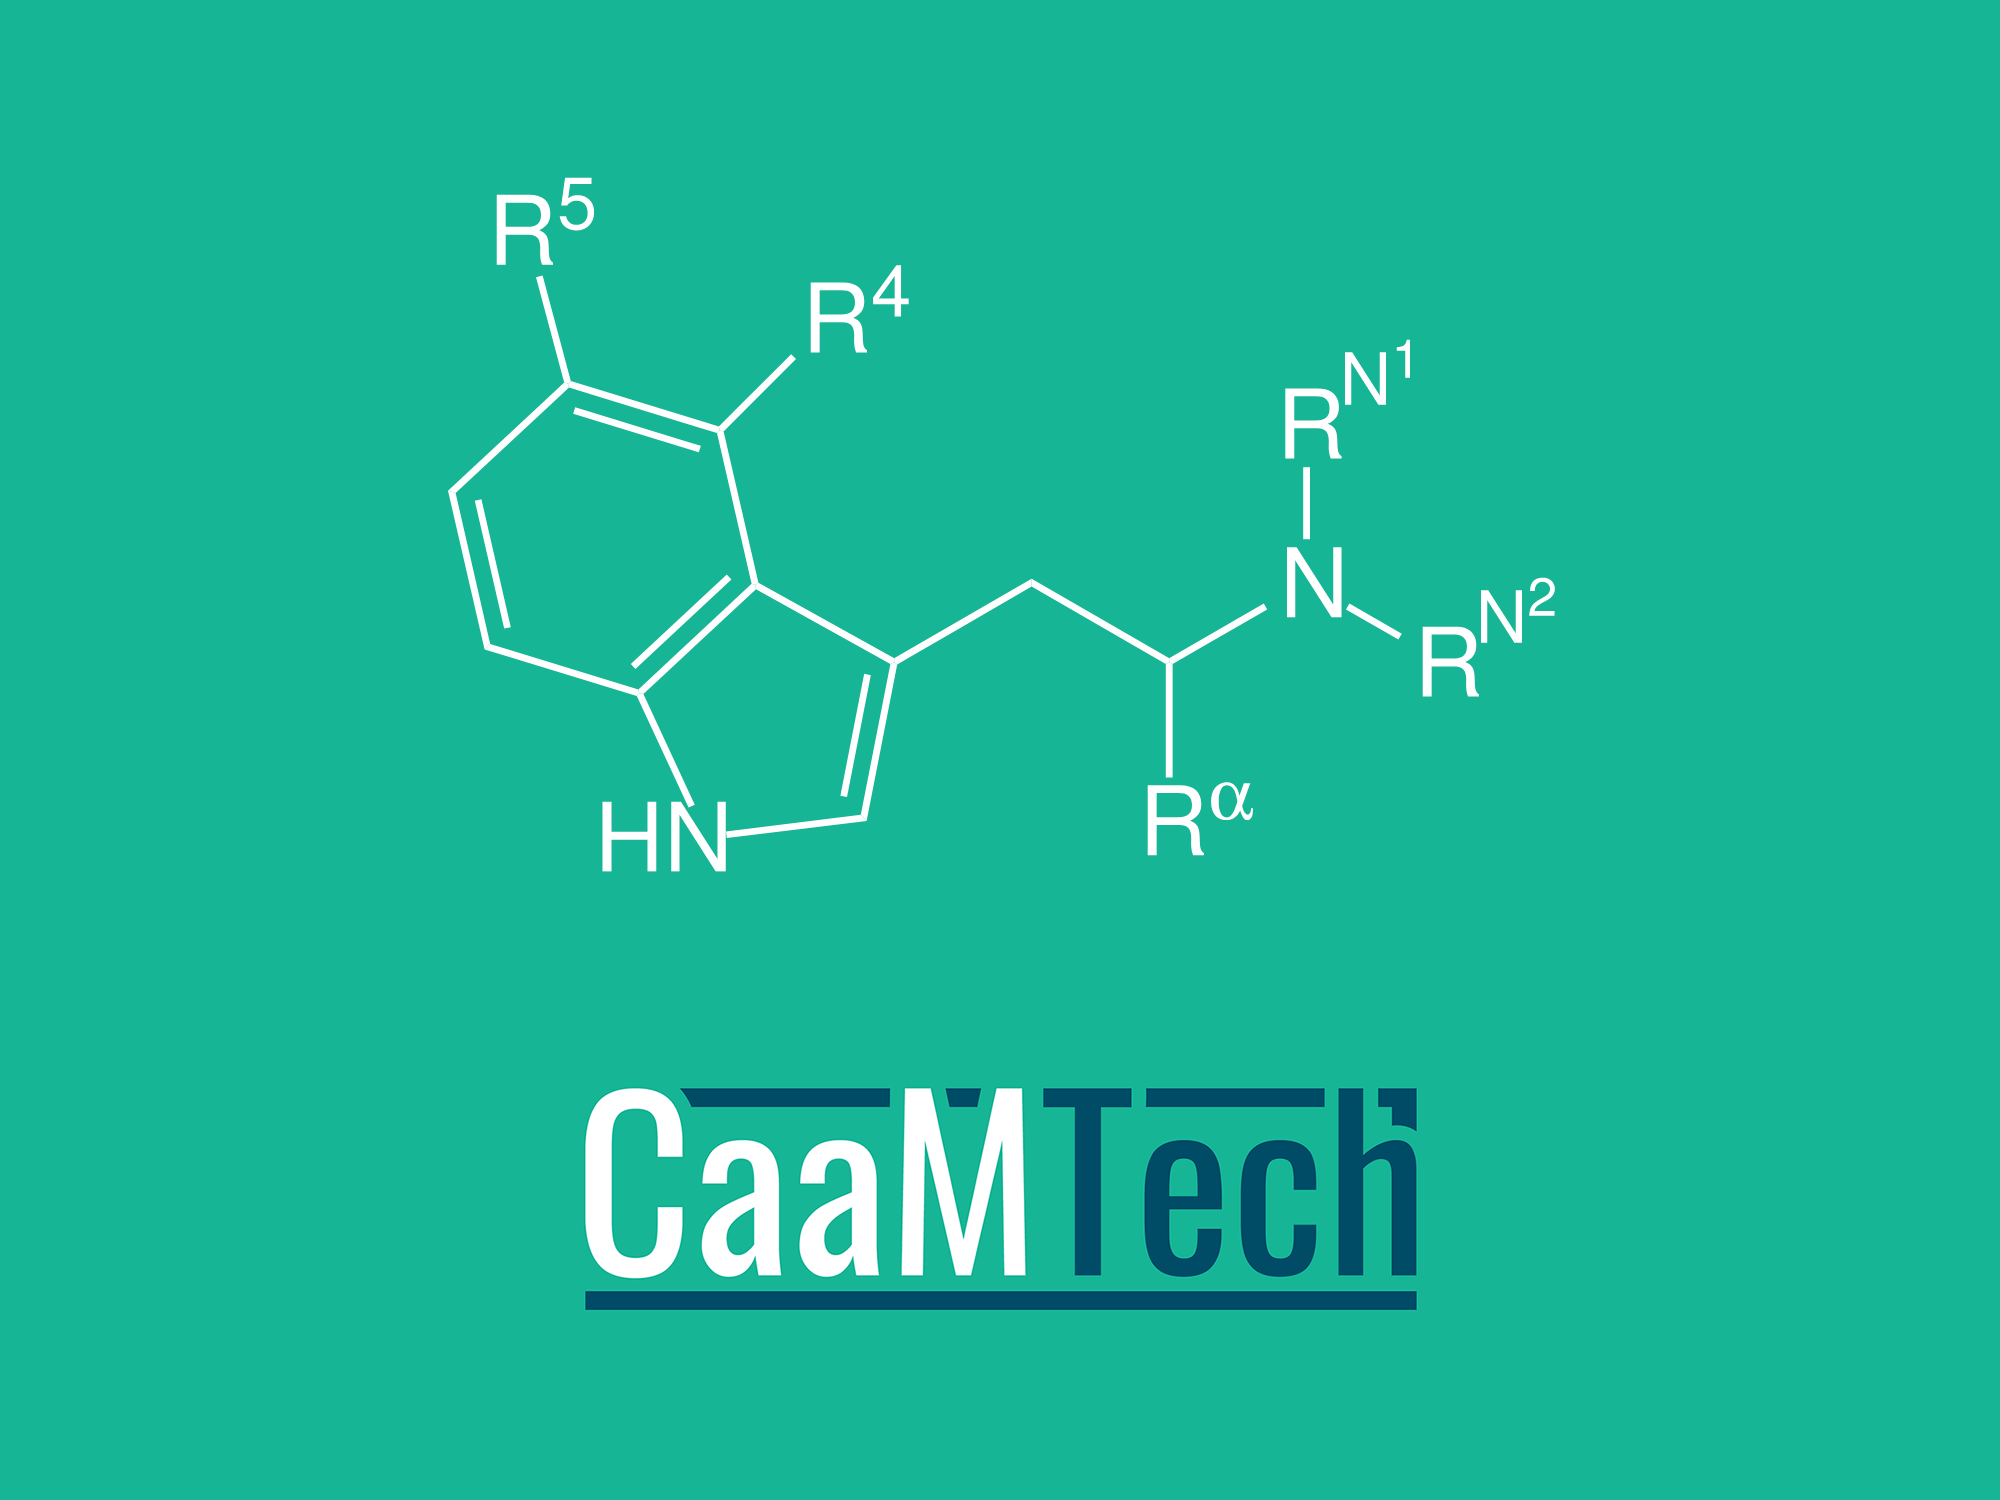 CaaMTech Collaborates With National Institutes of Health to Research Psychedelics